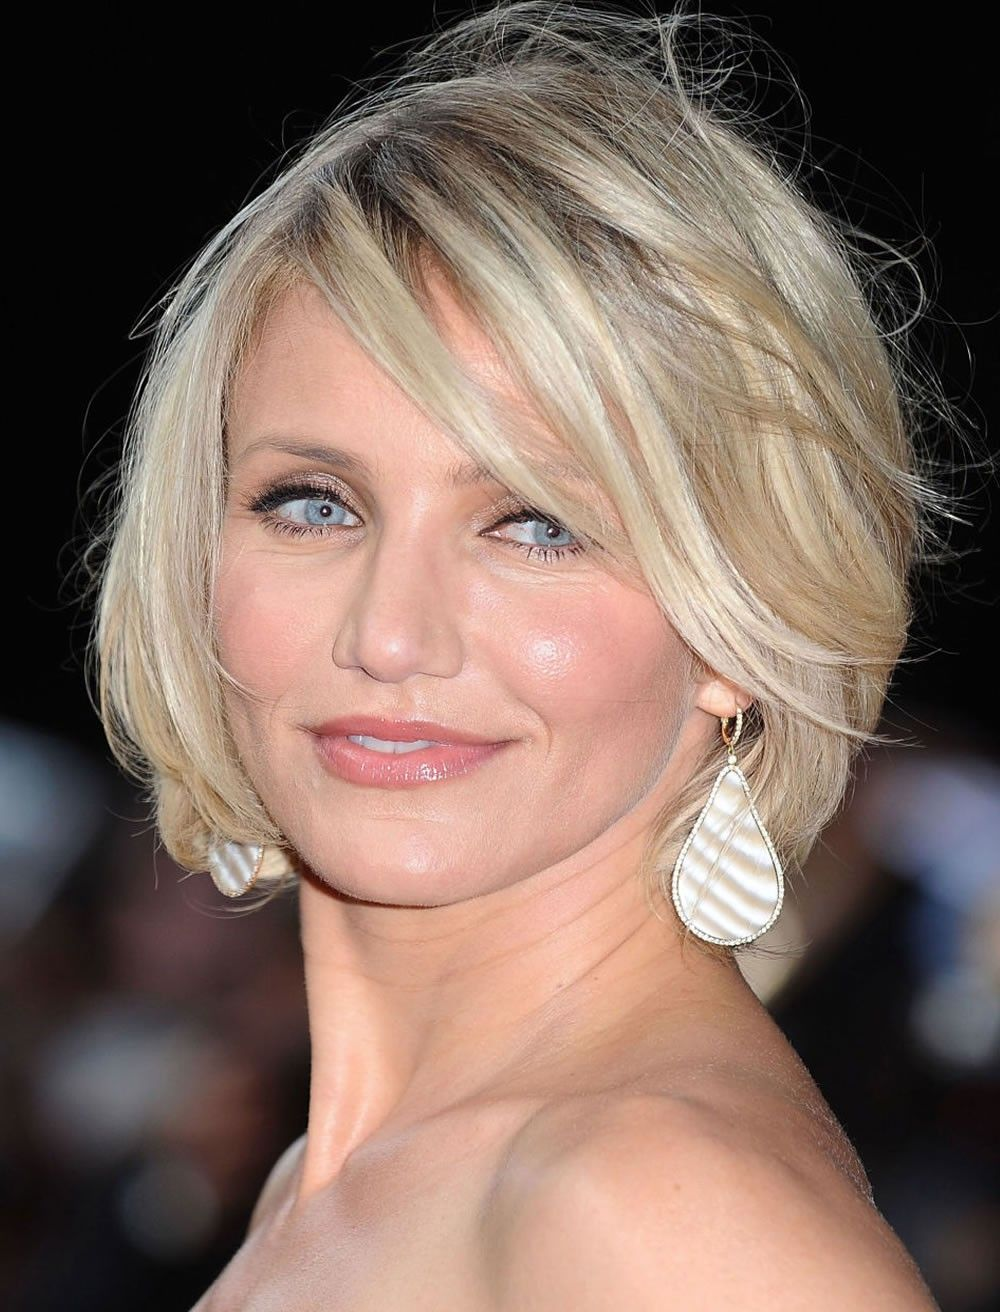 Bob Hairstyles For Older Women Over 40 To 60 Years 2017 2018 Short Hair Styles For Round Faces Hair Lengths Cameron Diaz Hair